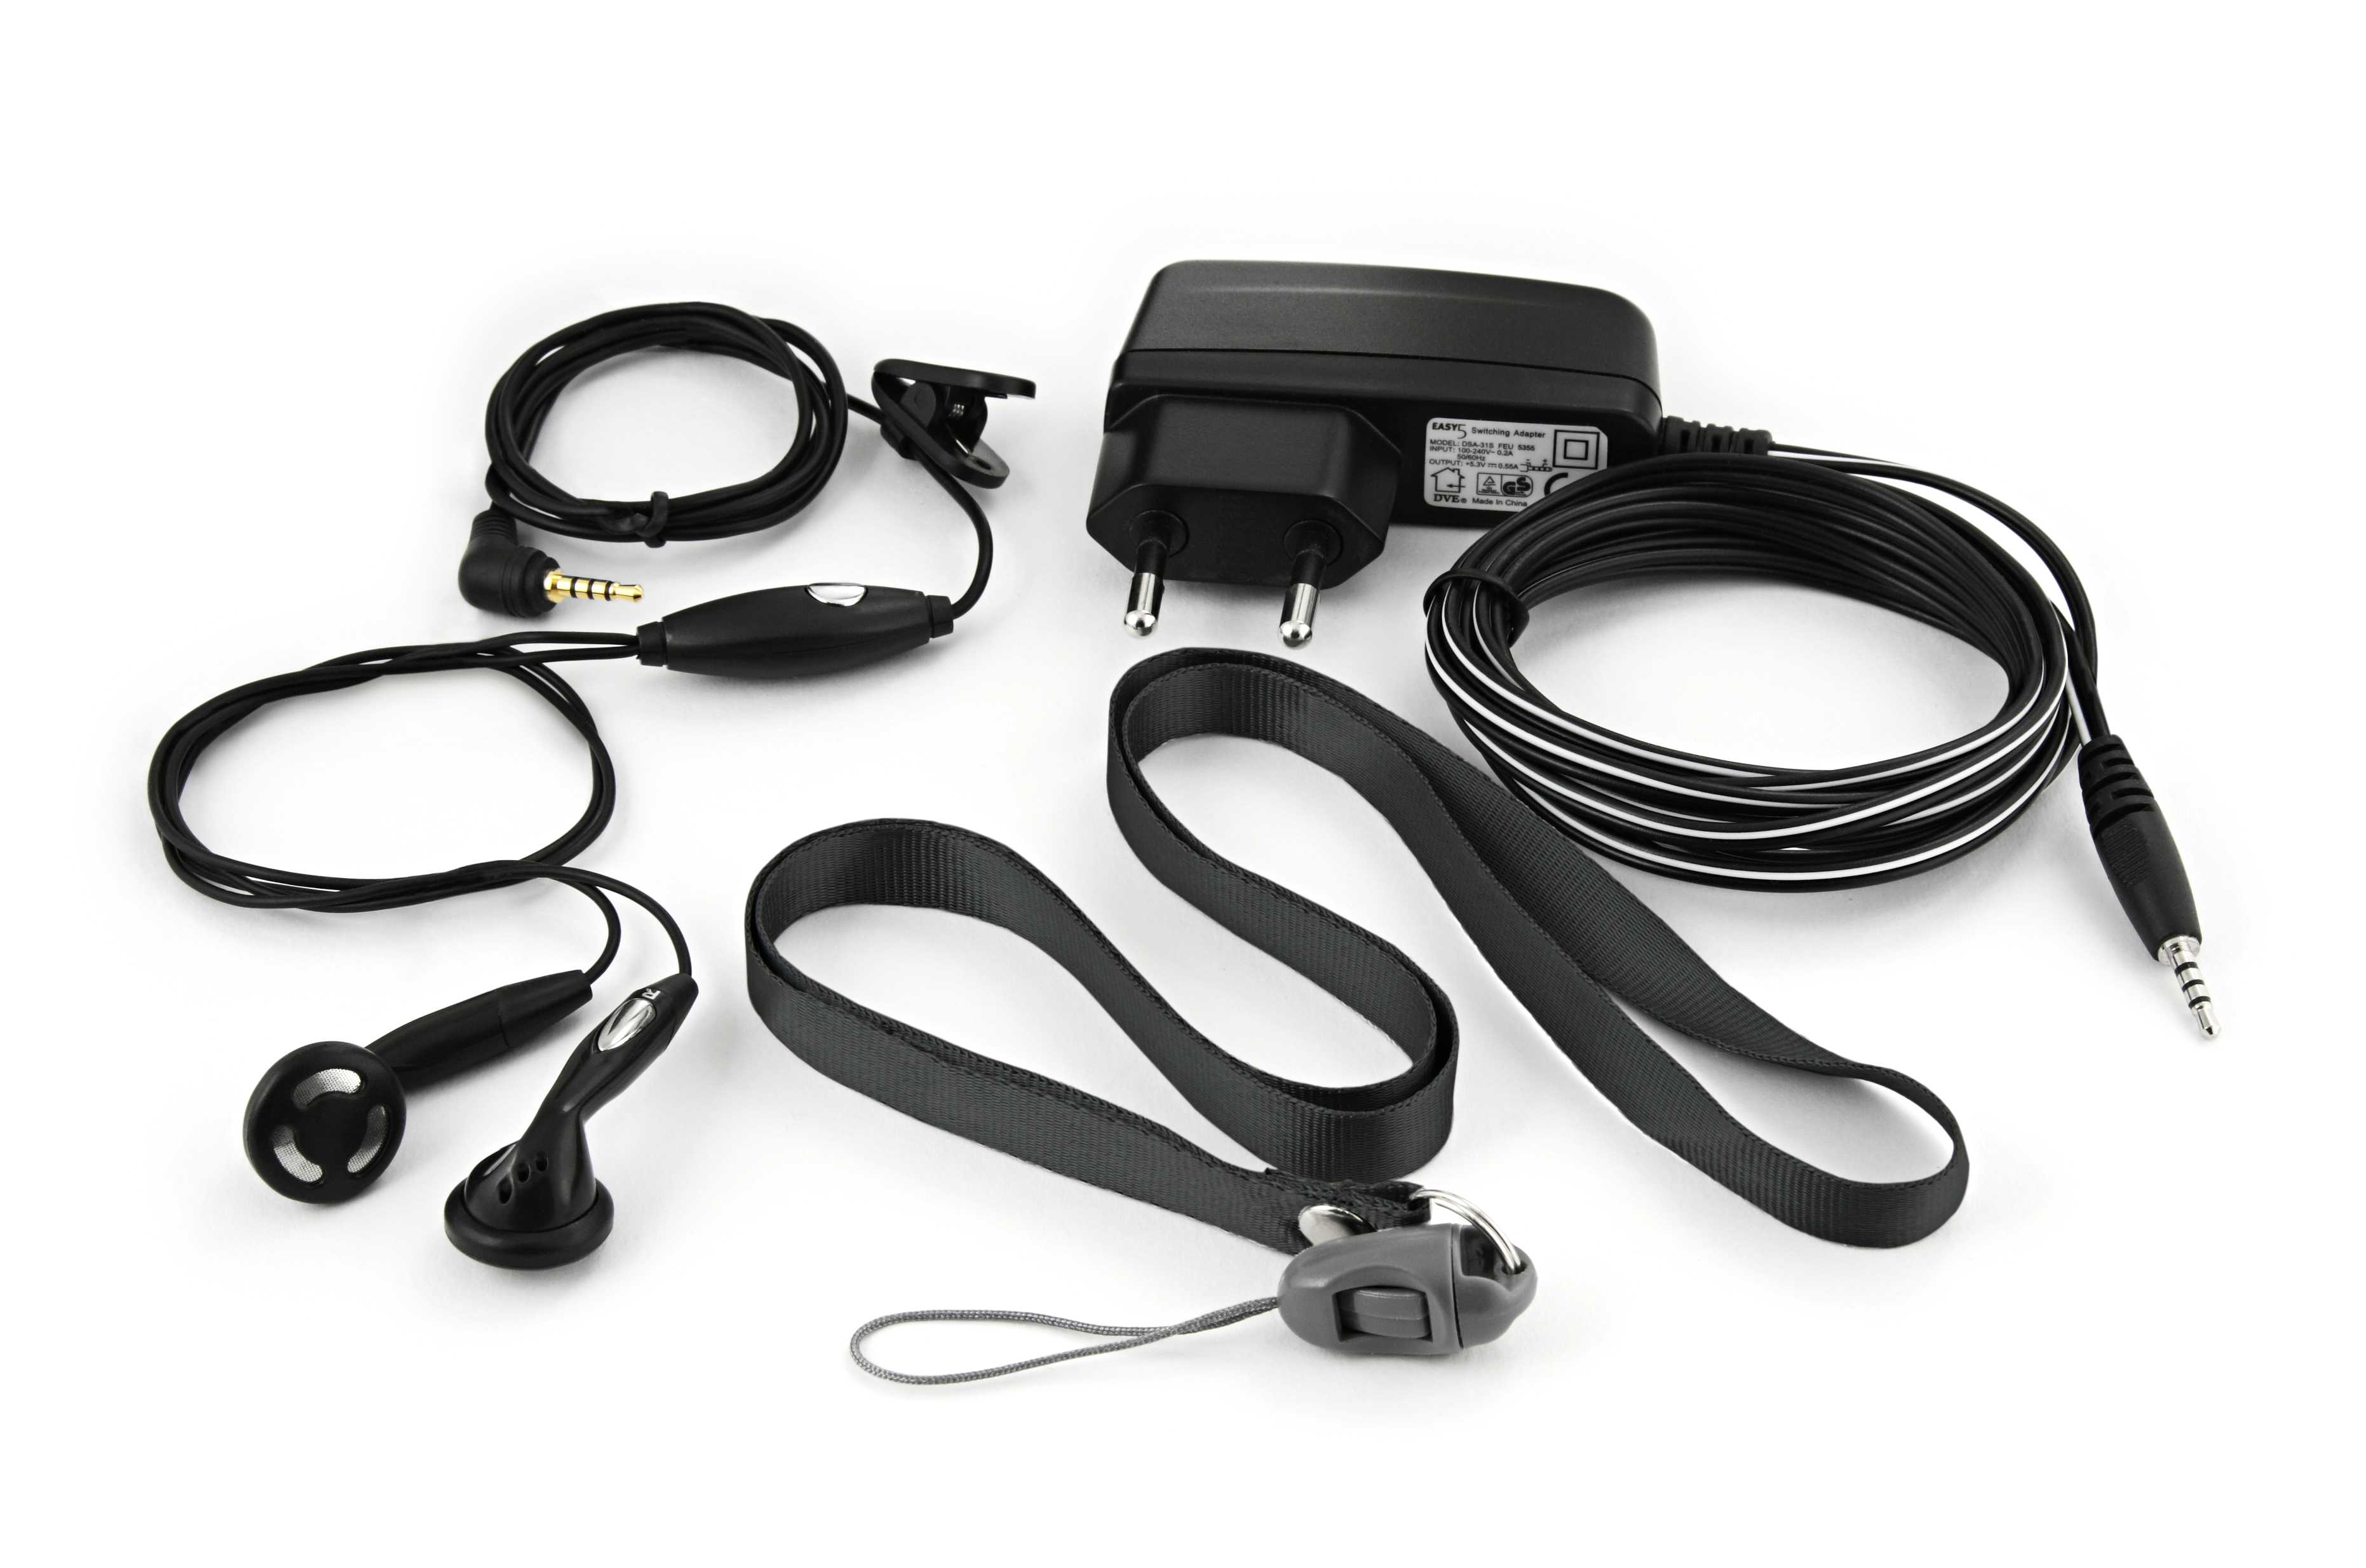 Apple Samsung Nokia BlackBerry htc all Kinds of Accessories | ClickBD large image 0